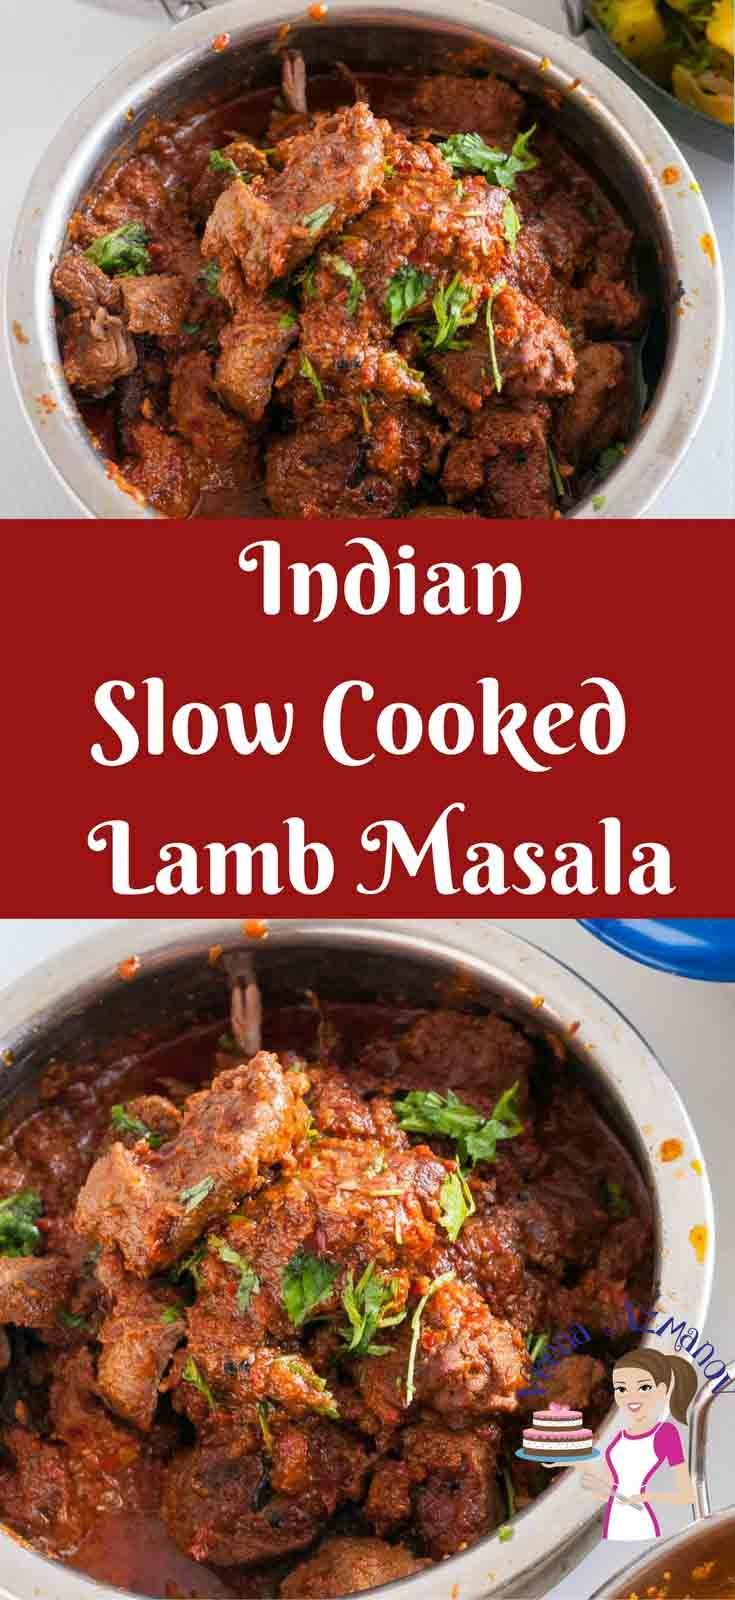 Lamb Masala Also Called Mutton Masala Is A Classic Indian Meat Dish With A Distinct Flavor And Aroma The Pro Slow Cooked Lamb Lamb Curry Recipes Curry Recipes